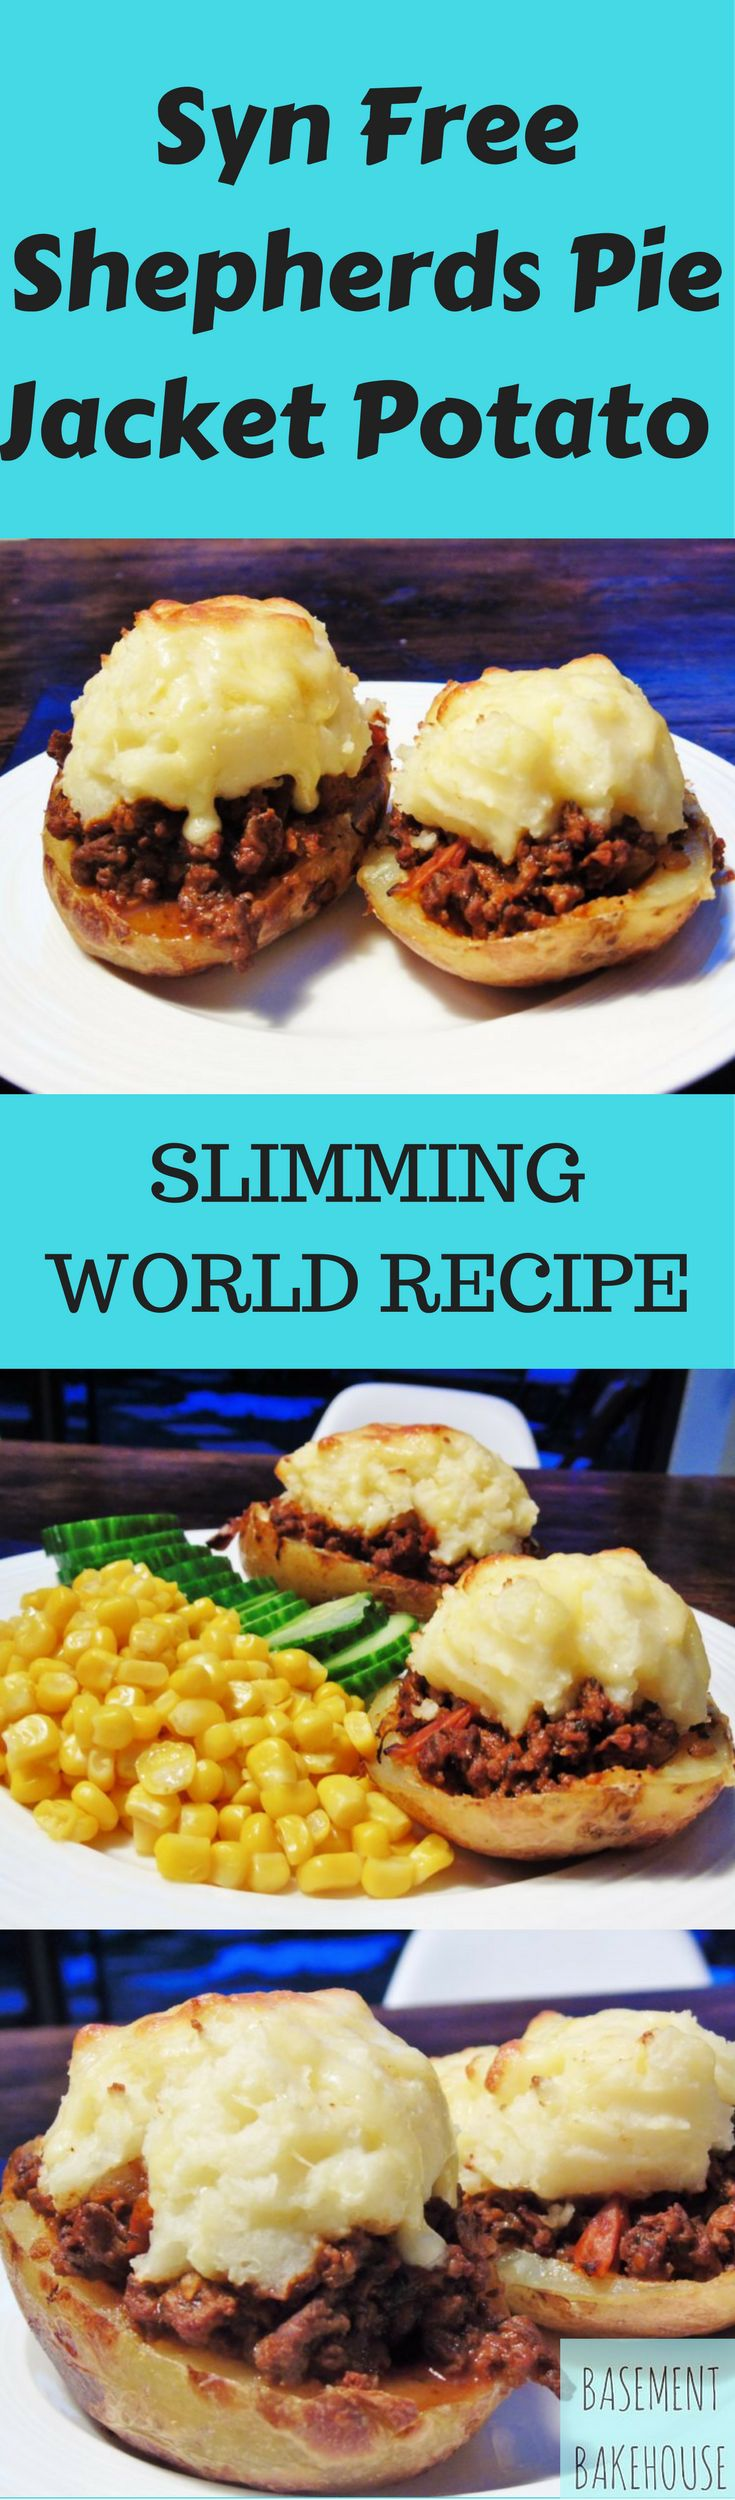 25 Best Slimming World Lunch Ideas On Pinterest